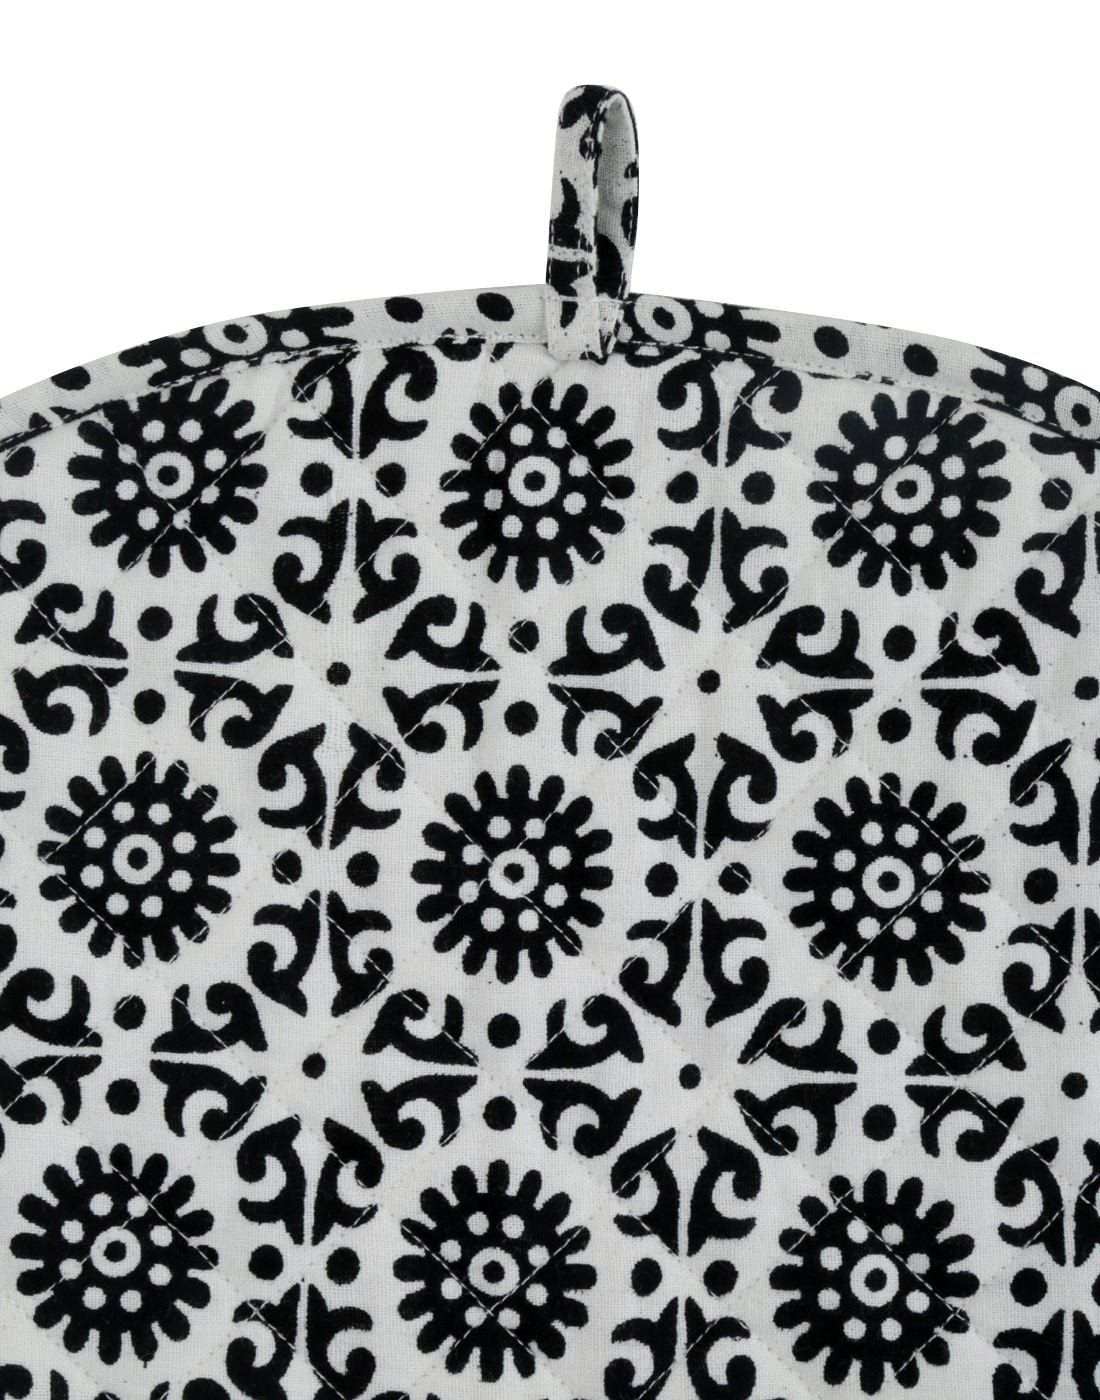 White Tea Cosy Cotton kitchen accessories Black royal Tea Cozy black kettle cover